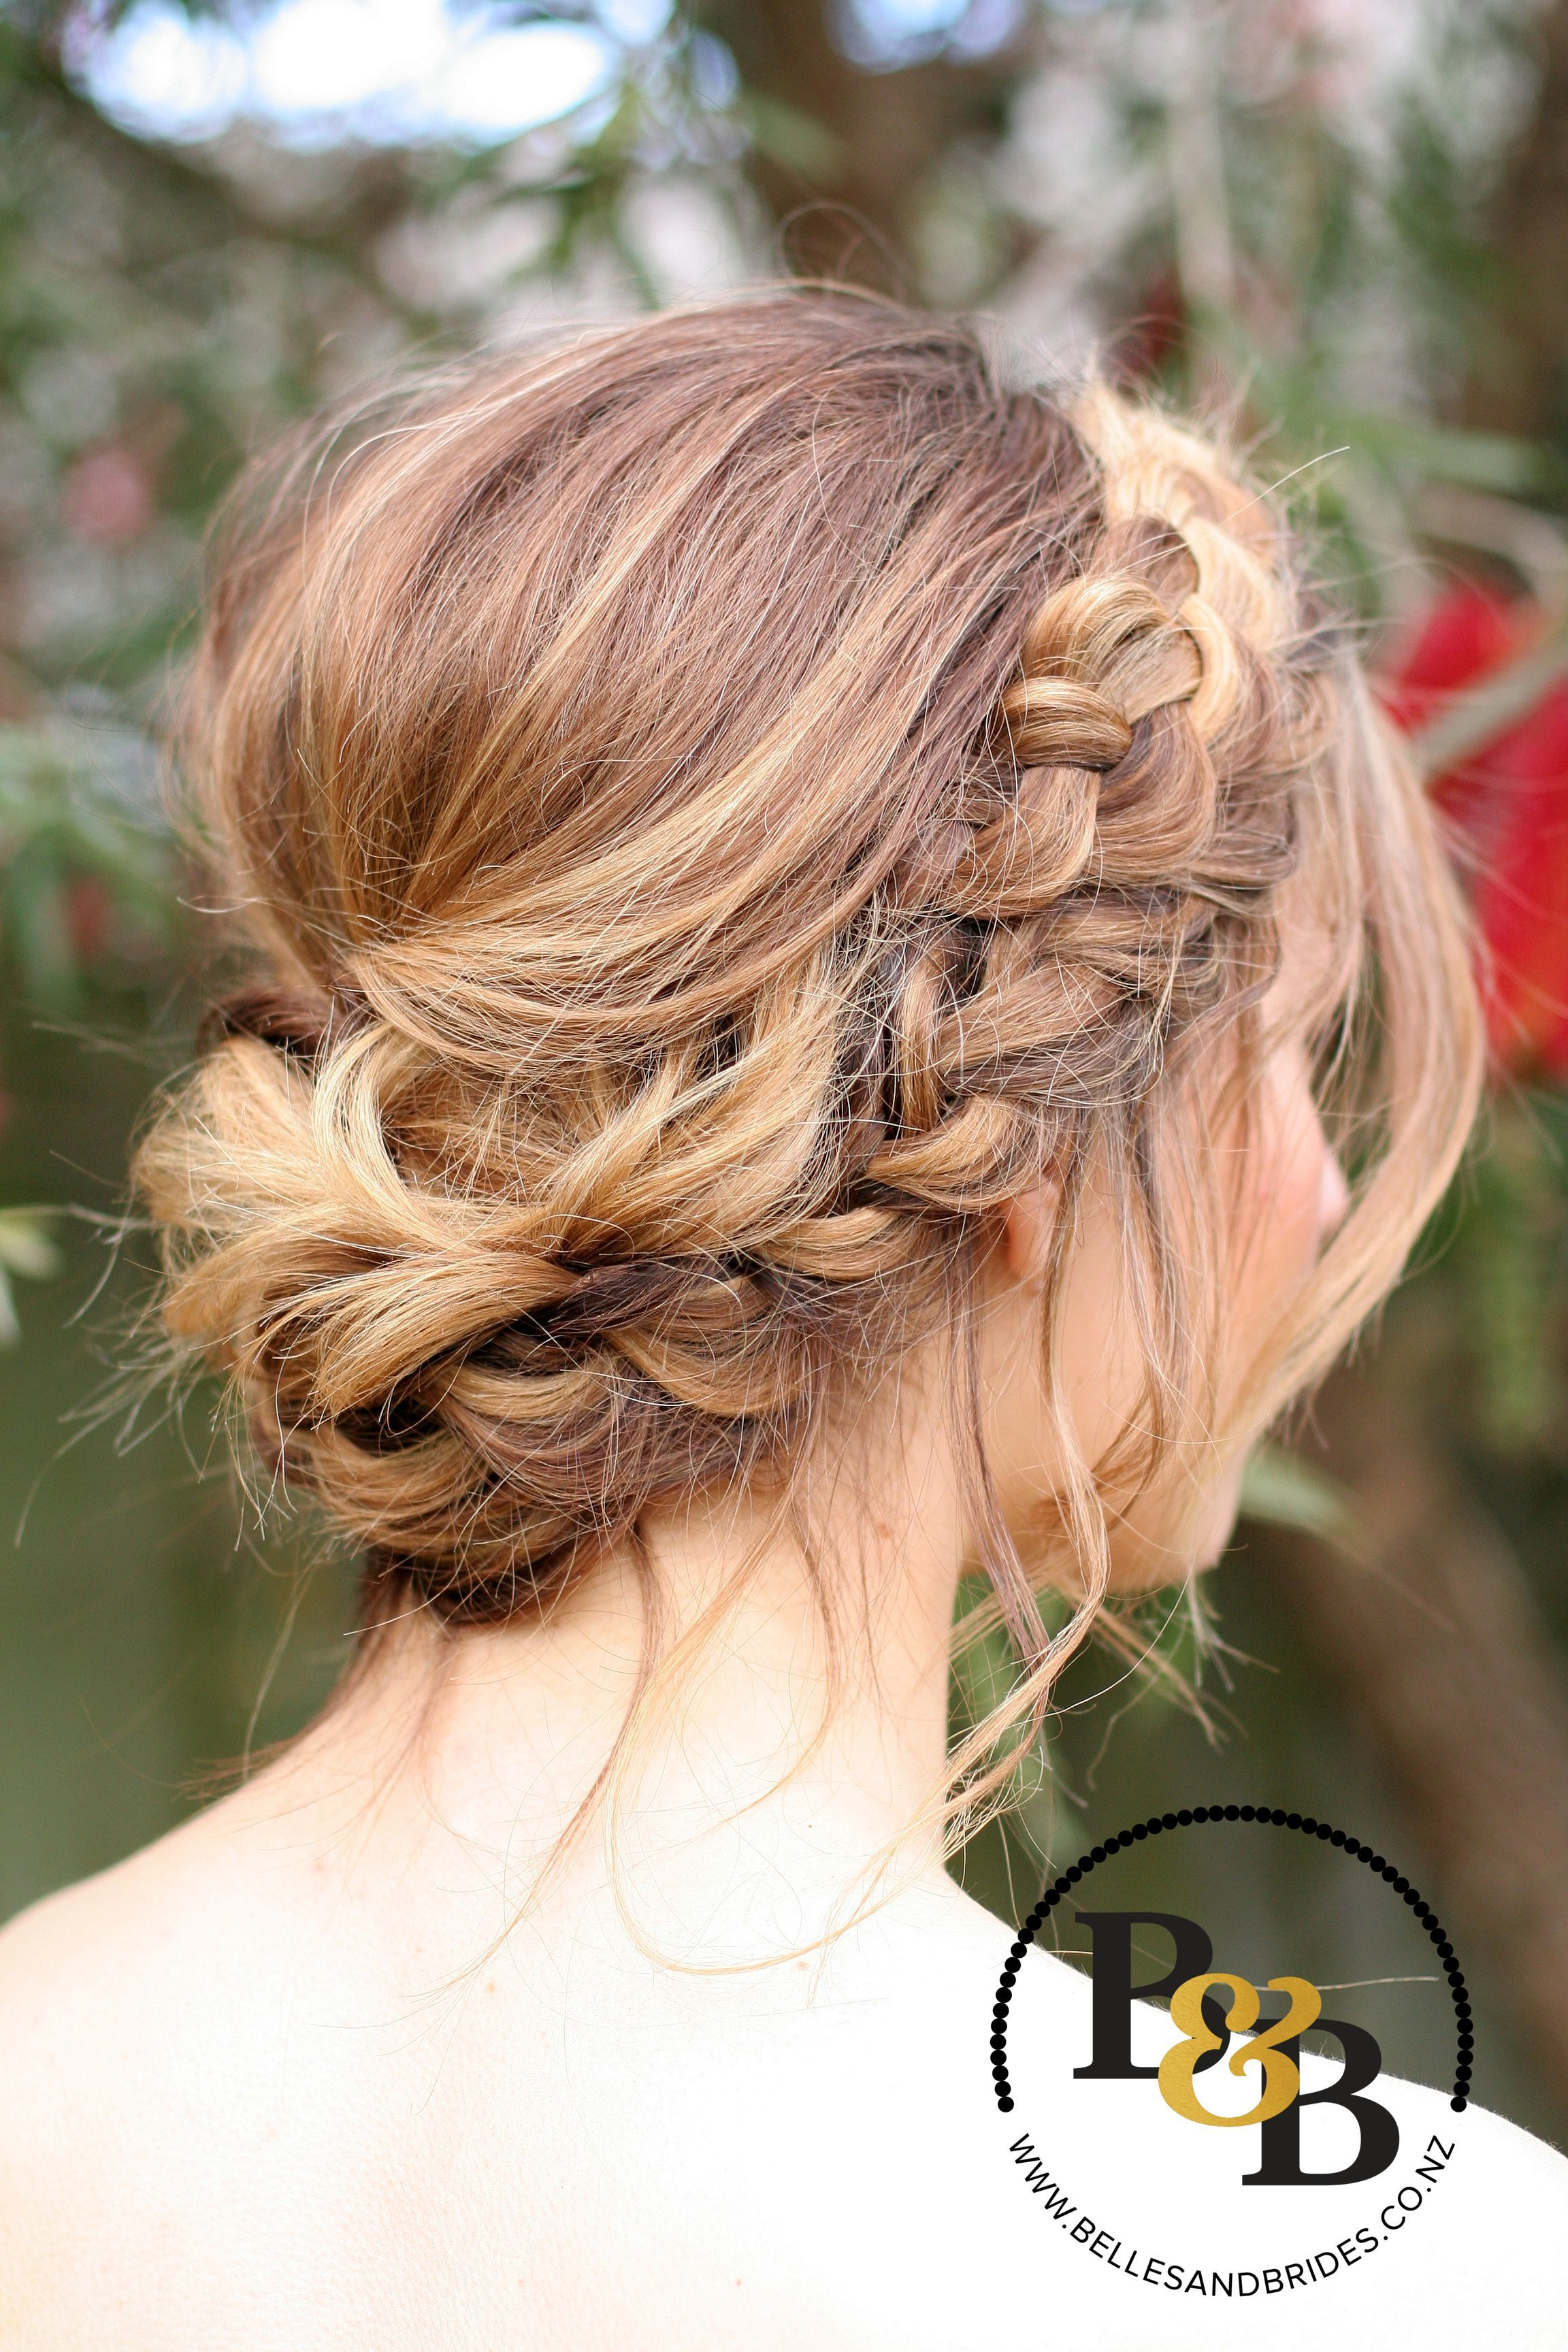 Wedding  hair  with braid  messy bridal  updo bridesmaids